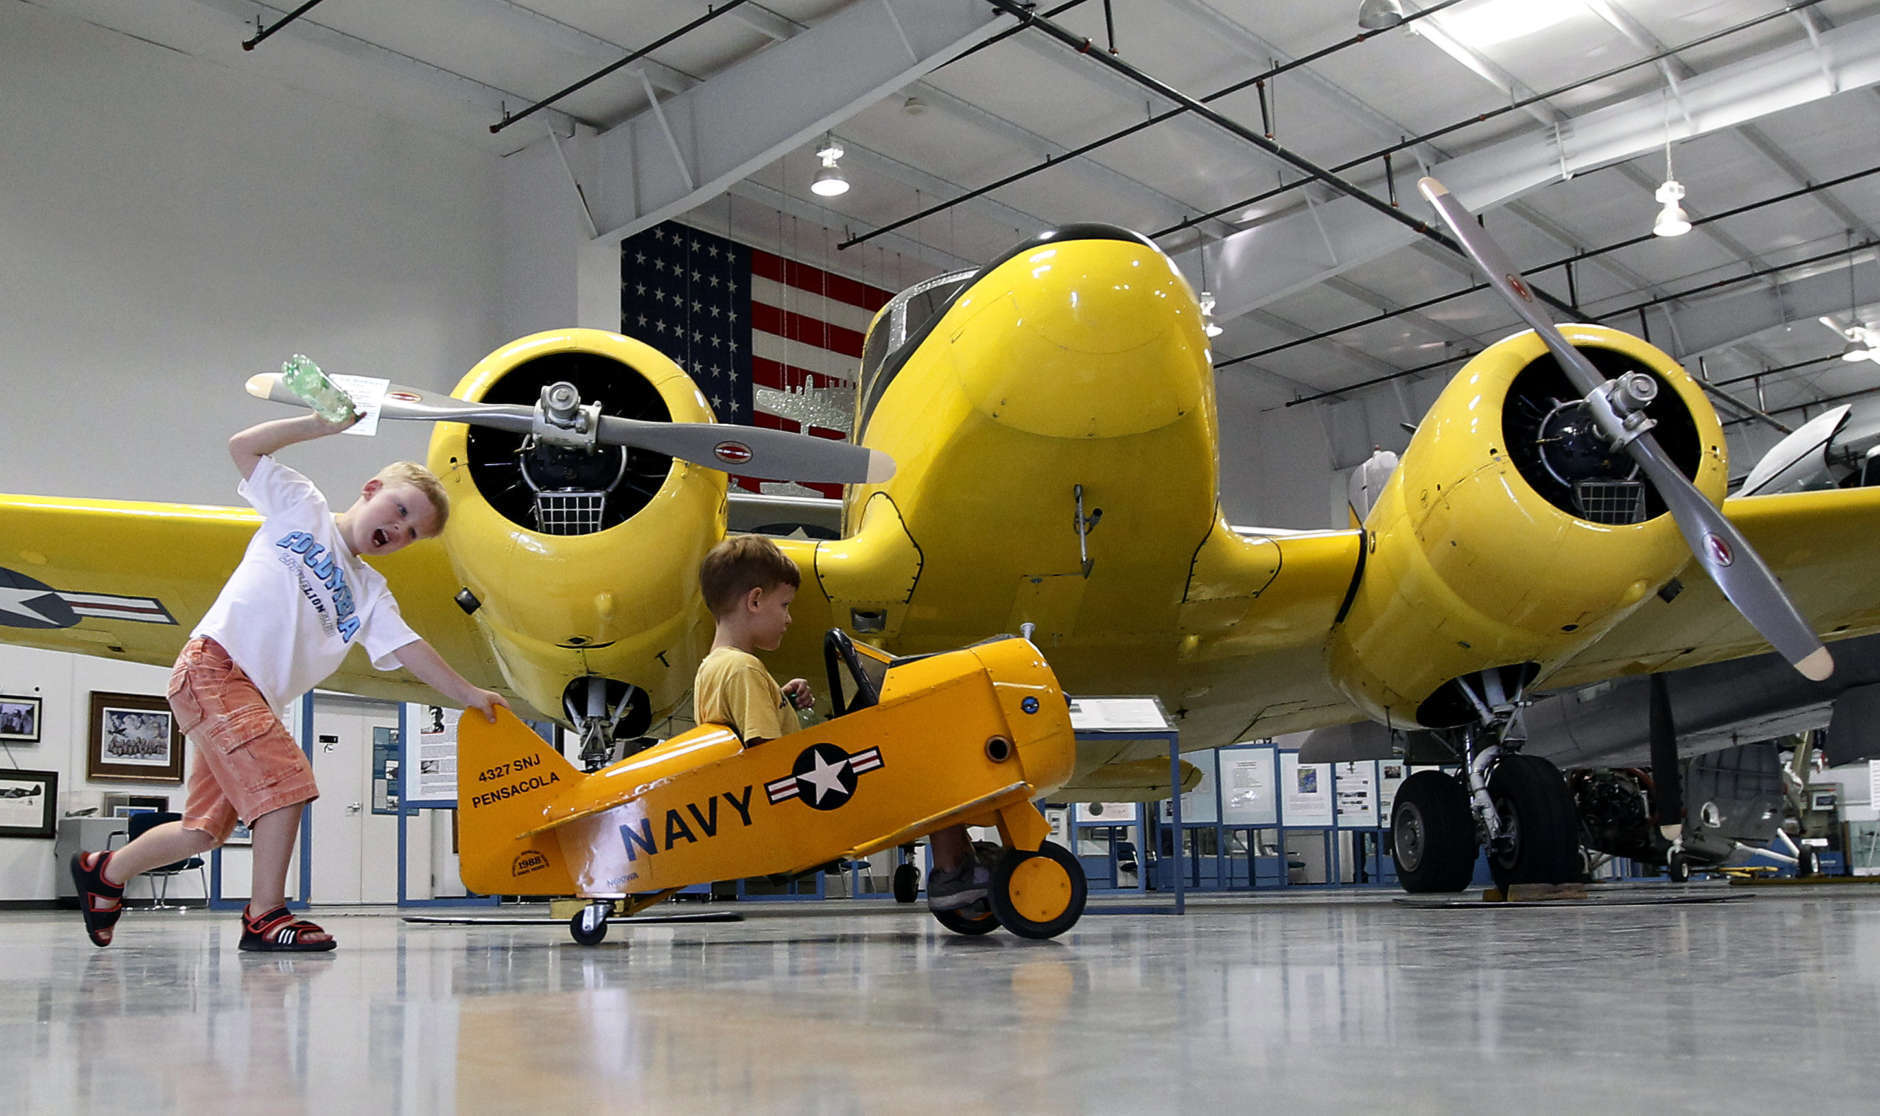 "Two youngsters enjoy riding around in a toy plane as they ride in front of a Cessna T-50 ""Bobcat"" transport trainer plane, from 1939-1949, at the Commemorative Air Force Aviation Museum Thursday, Aug. 2, 2012, in Mesa, Ariz.(AP Photo/Ross D. Franklin)"